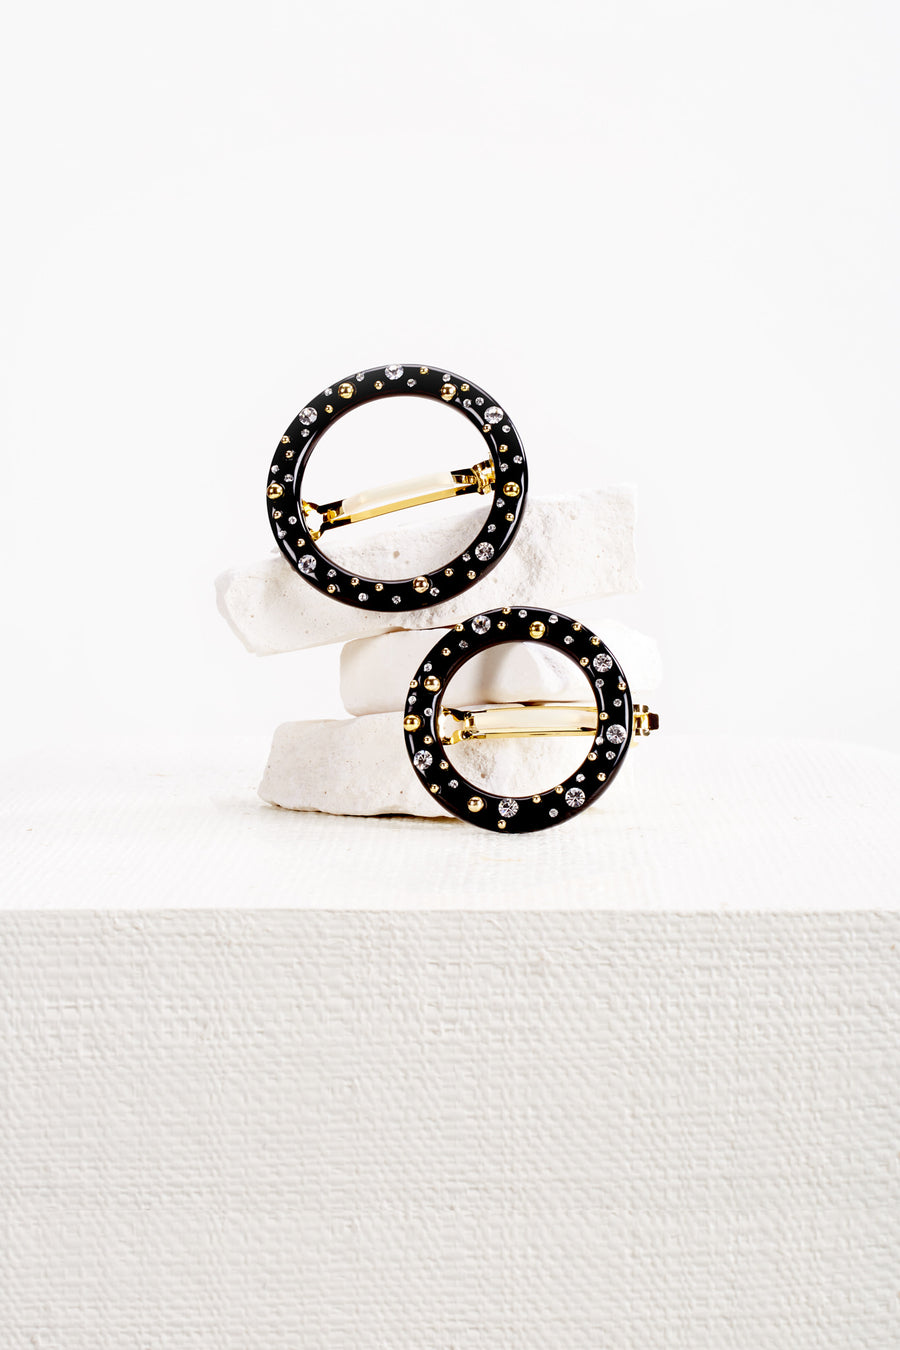 RIA STUDDED BARRETTE SET - BLACK